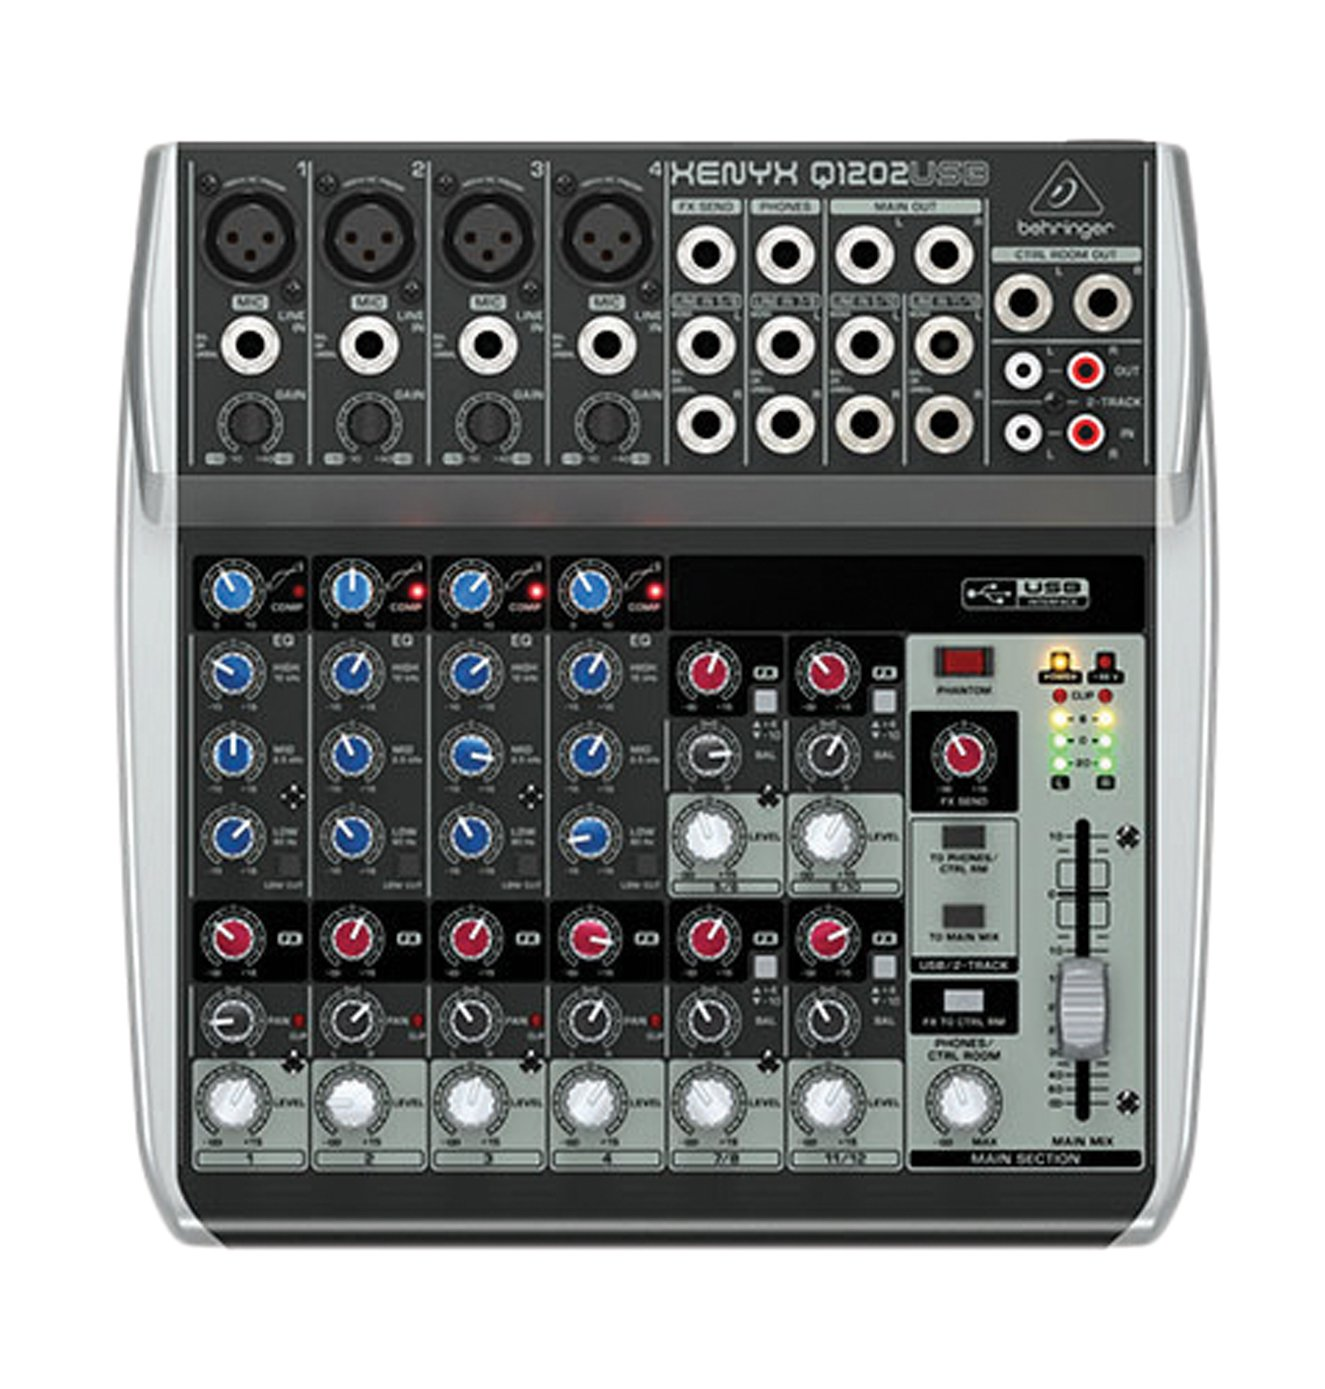 behringer q1202usb xenyx usb audio interface 12 input mixer from japan new f s. Black Bedroom Furniture Sets. Home Design Ideas